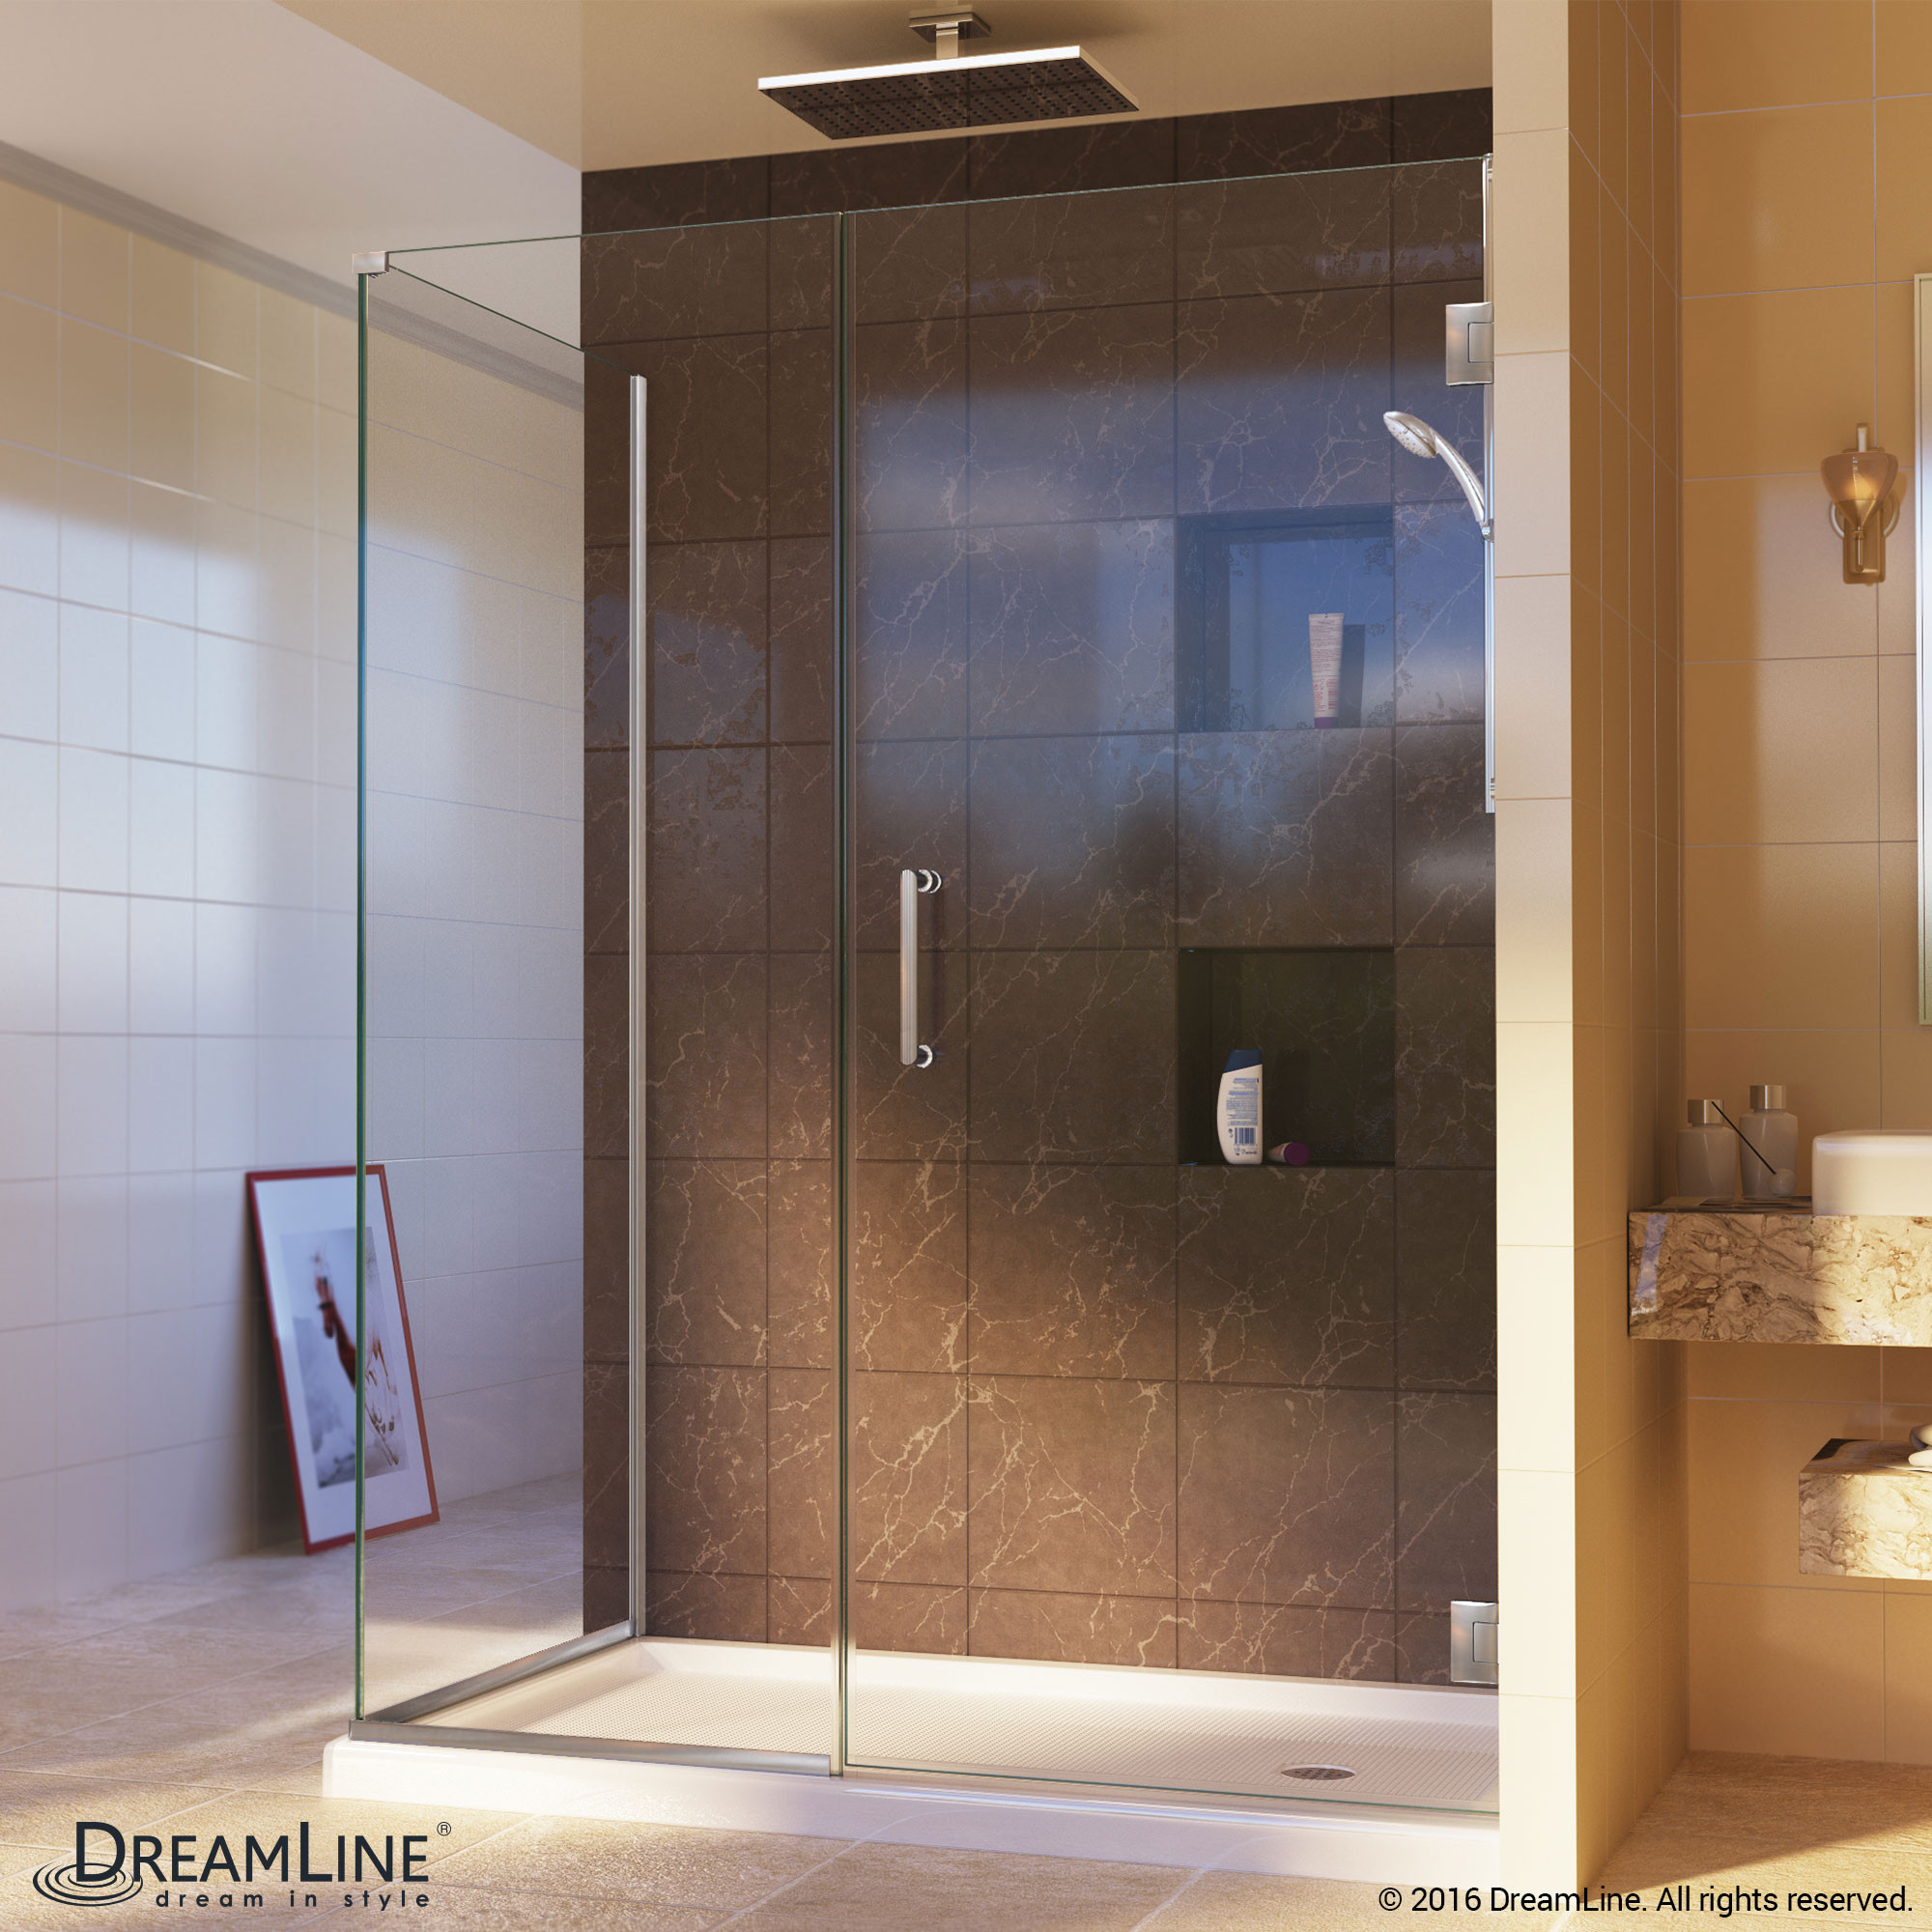 DreamLine SHEN-24605340-04 Unidoor Plus Hinged Shower Enclosure In Brushed Nickel Finish Hardware